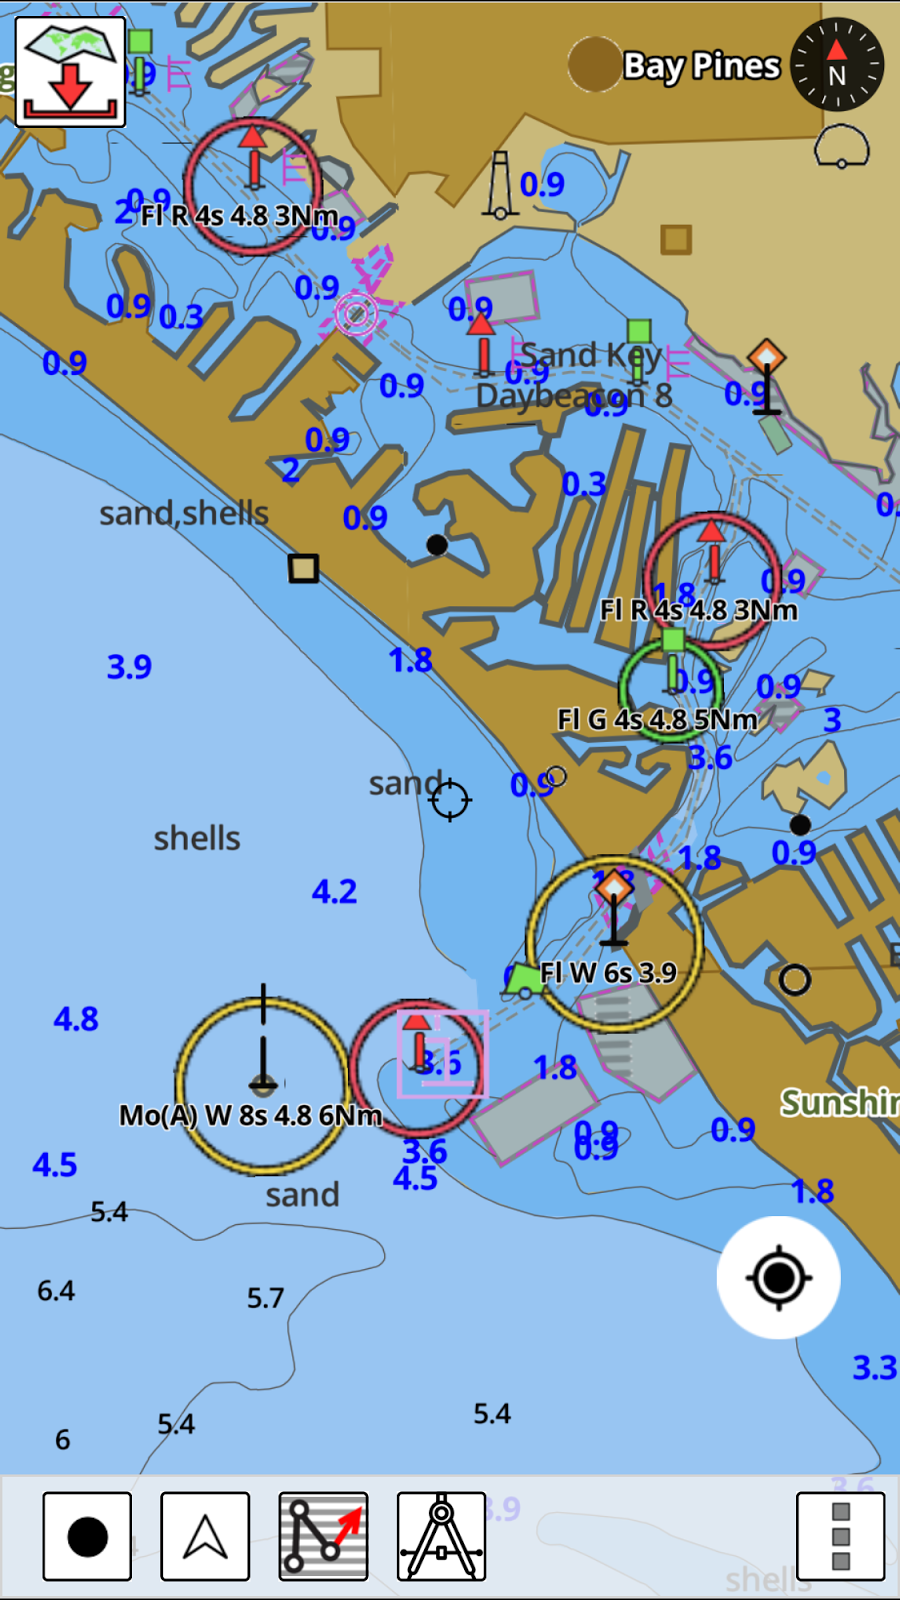 What Type Of Map Is Best Suited For Maritime Navigation : suited, maritime, navigation, I-Marine, Apps:, Nautical, I-Boating